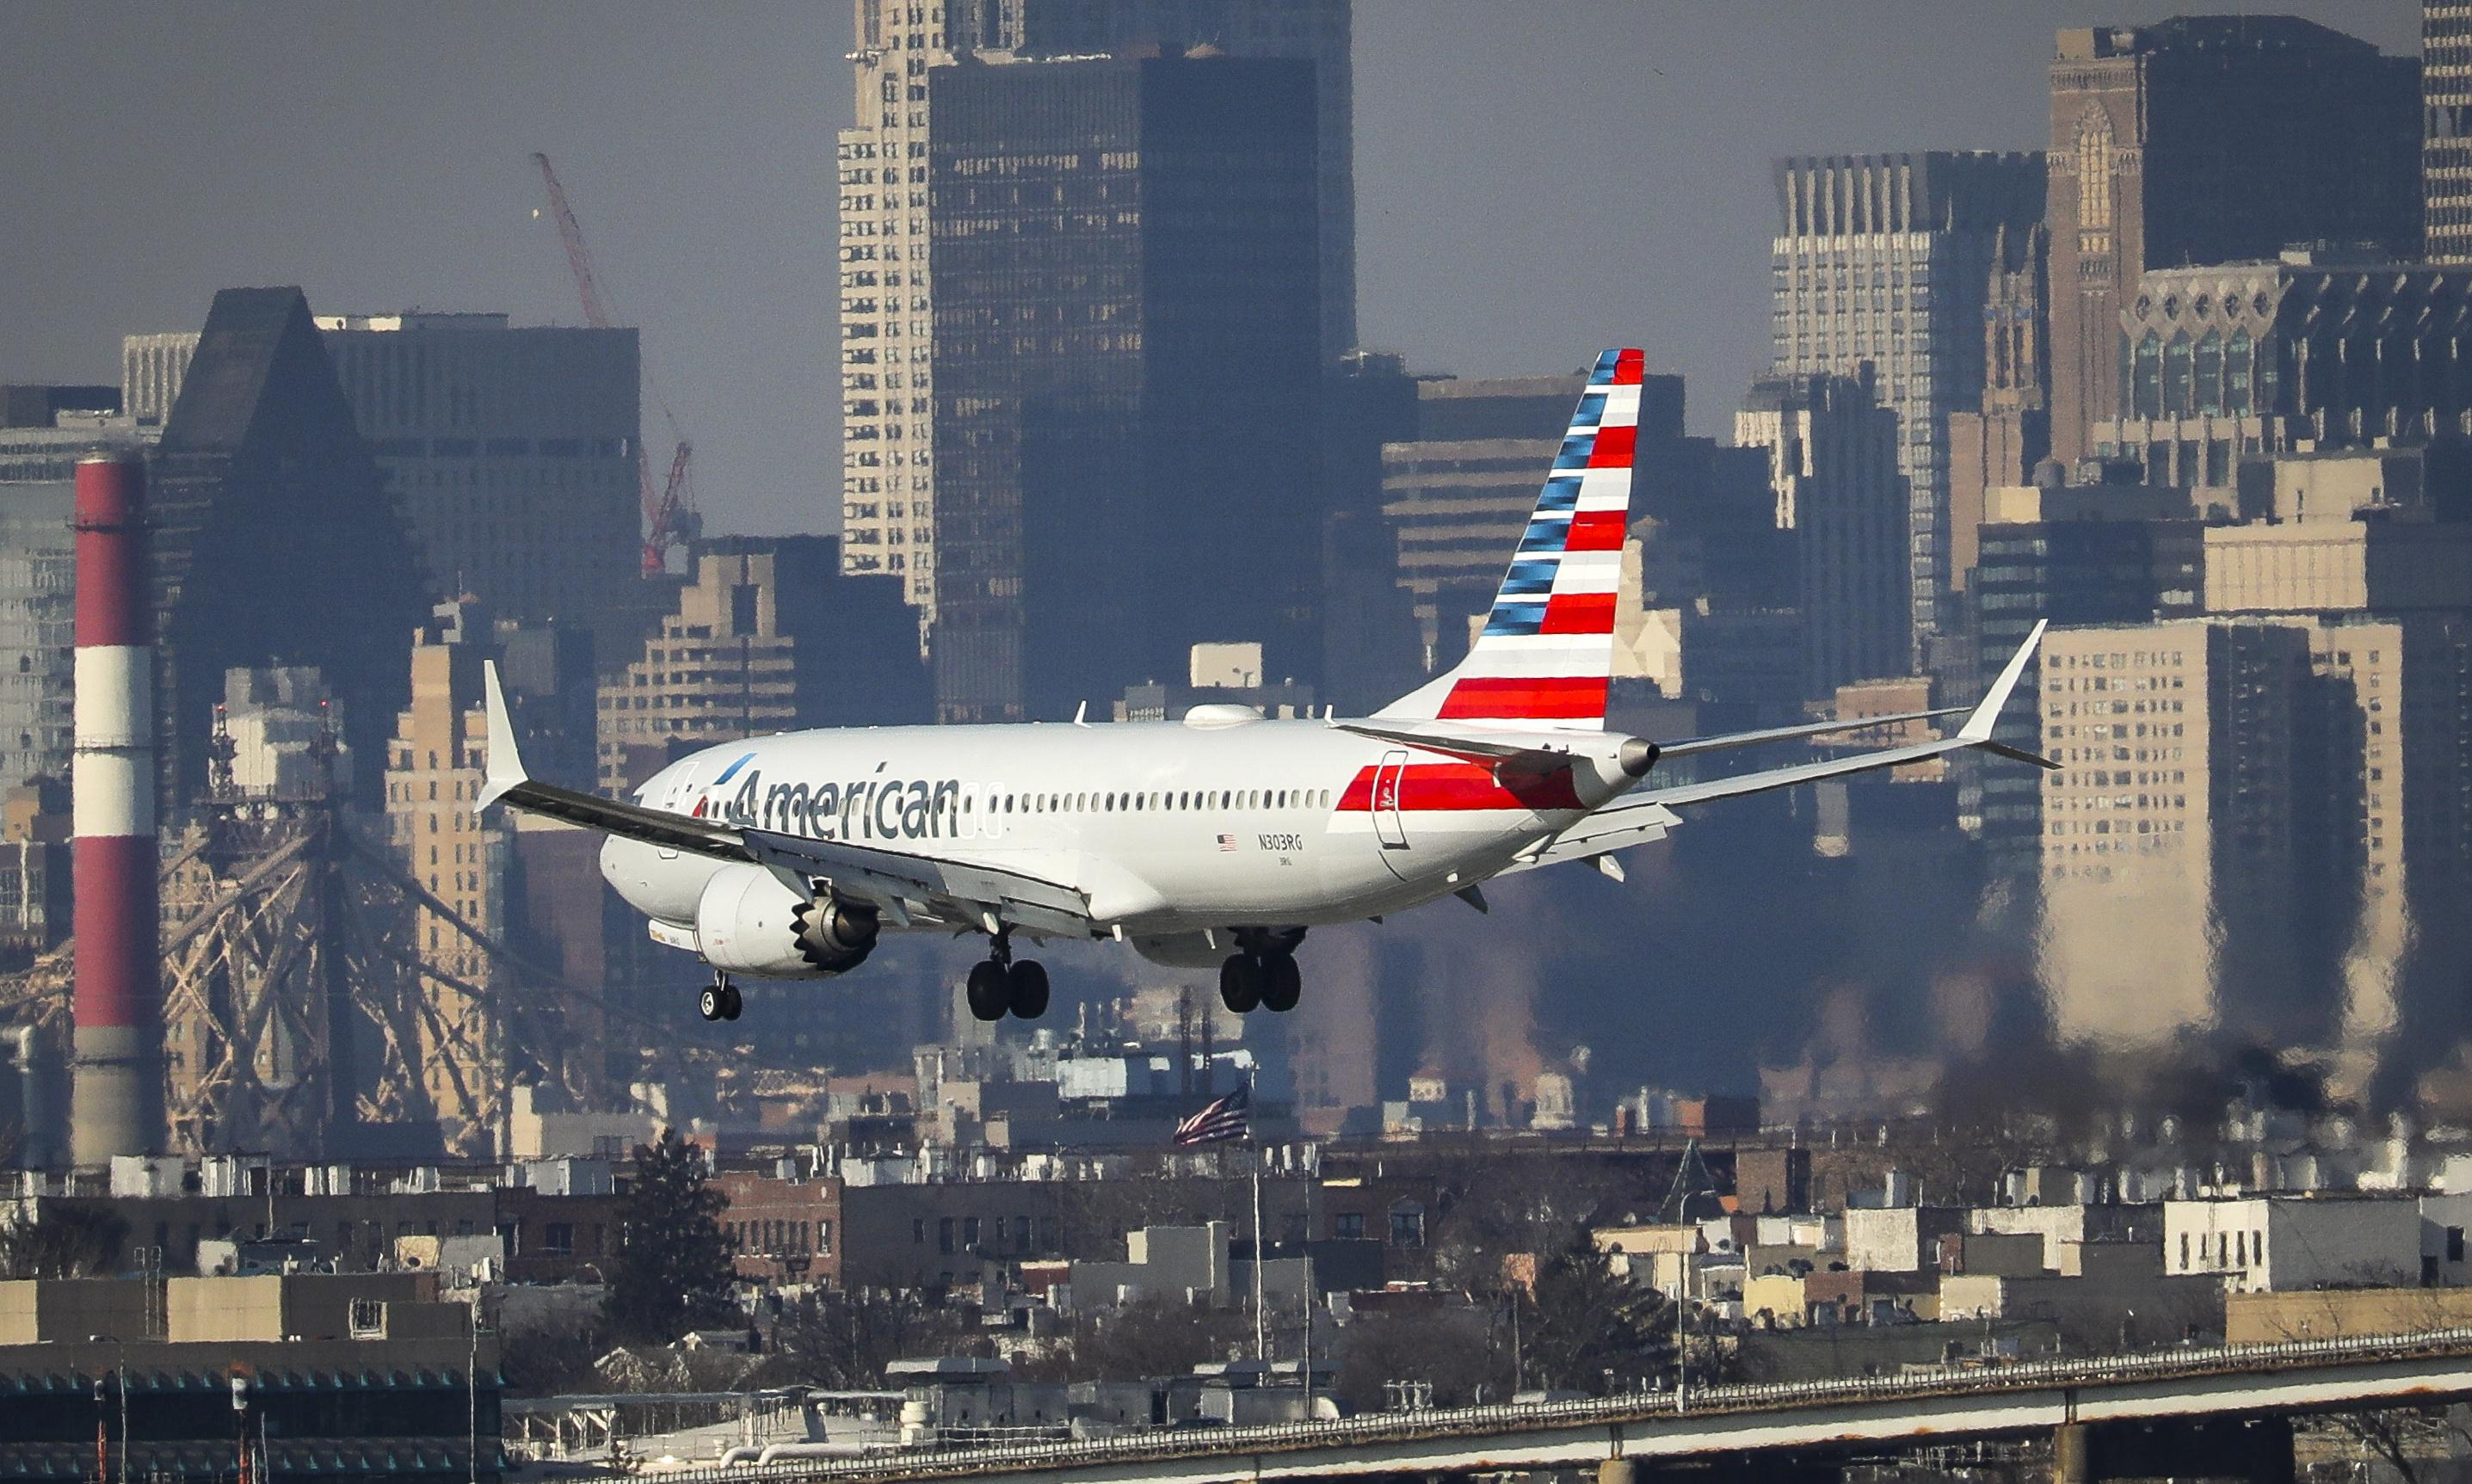 American Airlines union: blaming pilots for Boeing 737 Max crashes 'inexcusable'